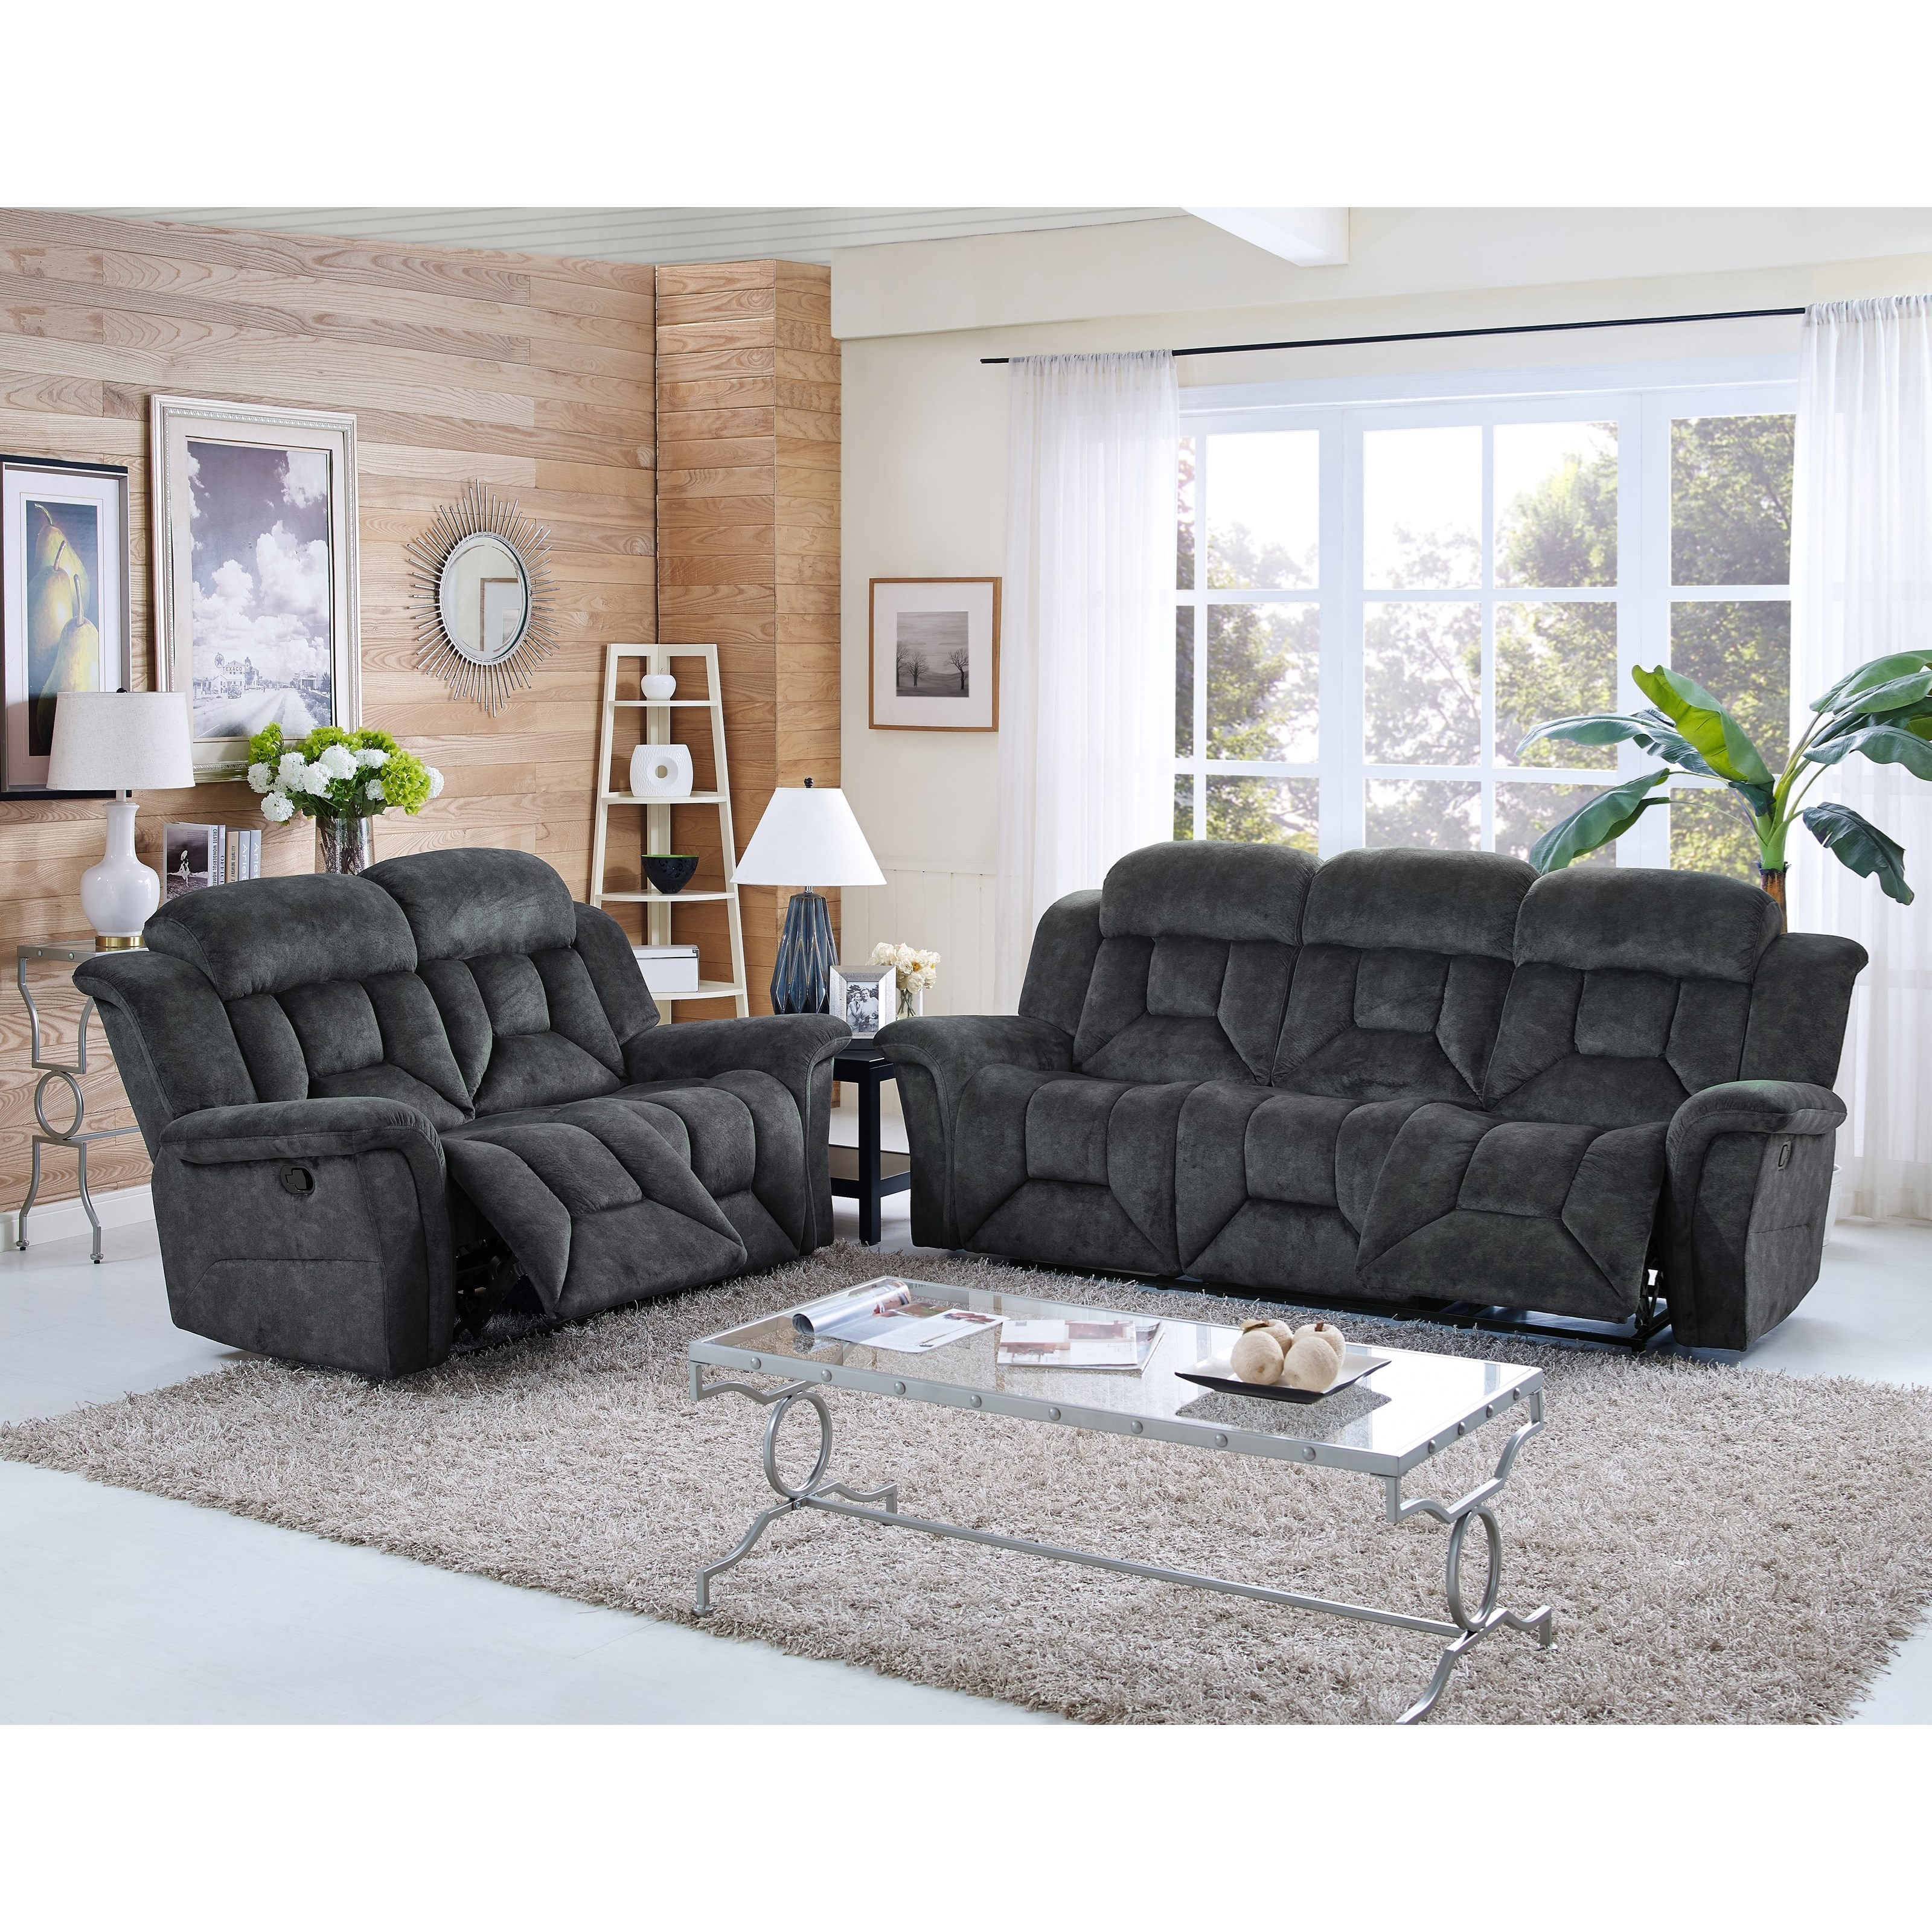 New Classic Jemma Reclining Living Room Group - Item Number: 2191 Reclining Living Room Group 1